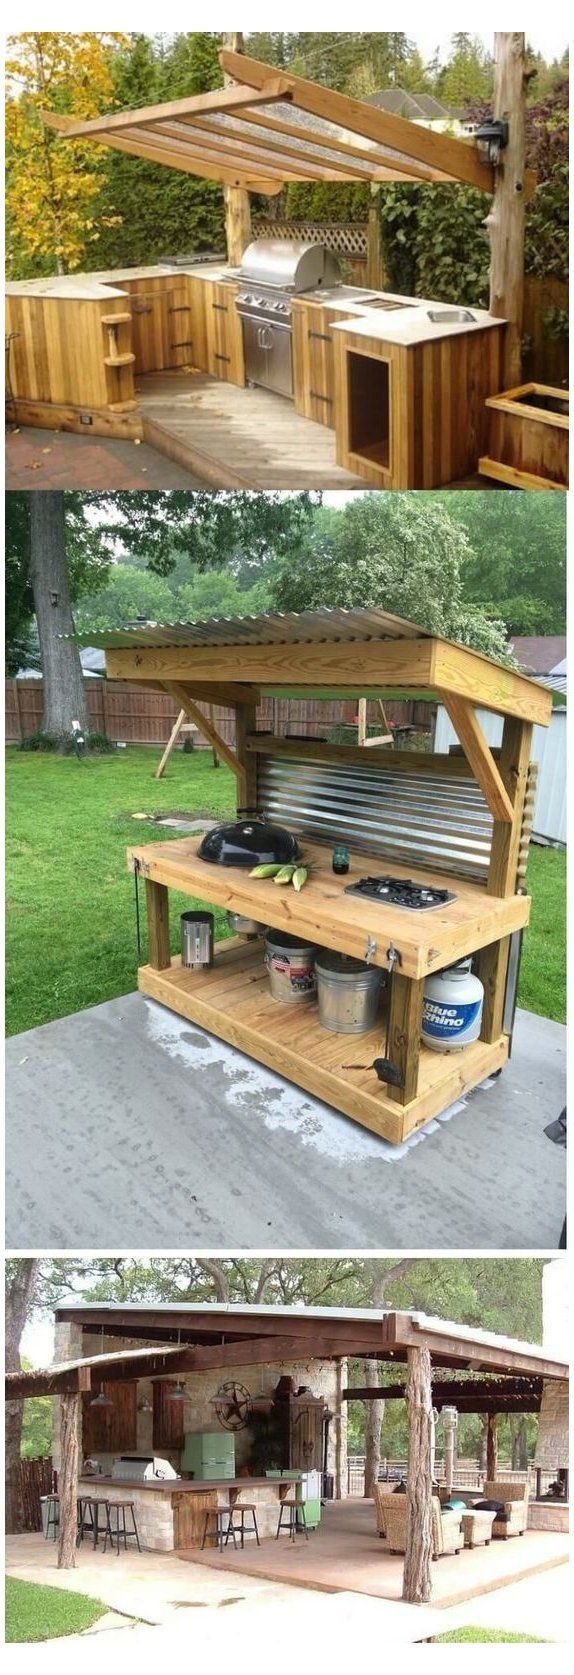 9 diy outdoor kitchen diy easy ideas and tutorial diy outdoor kitchen furniture on outdoor kitchen easy id=68274